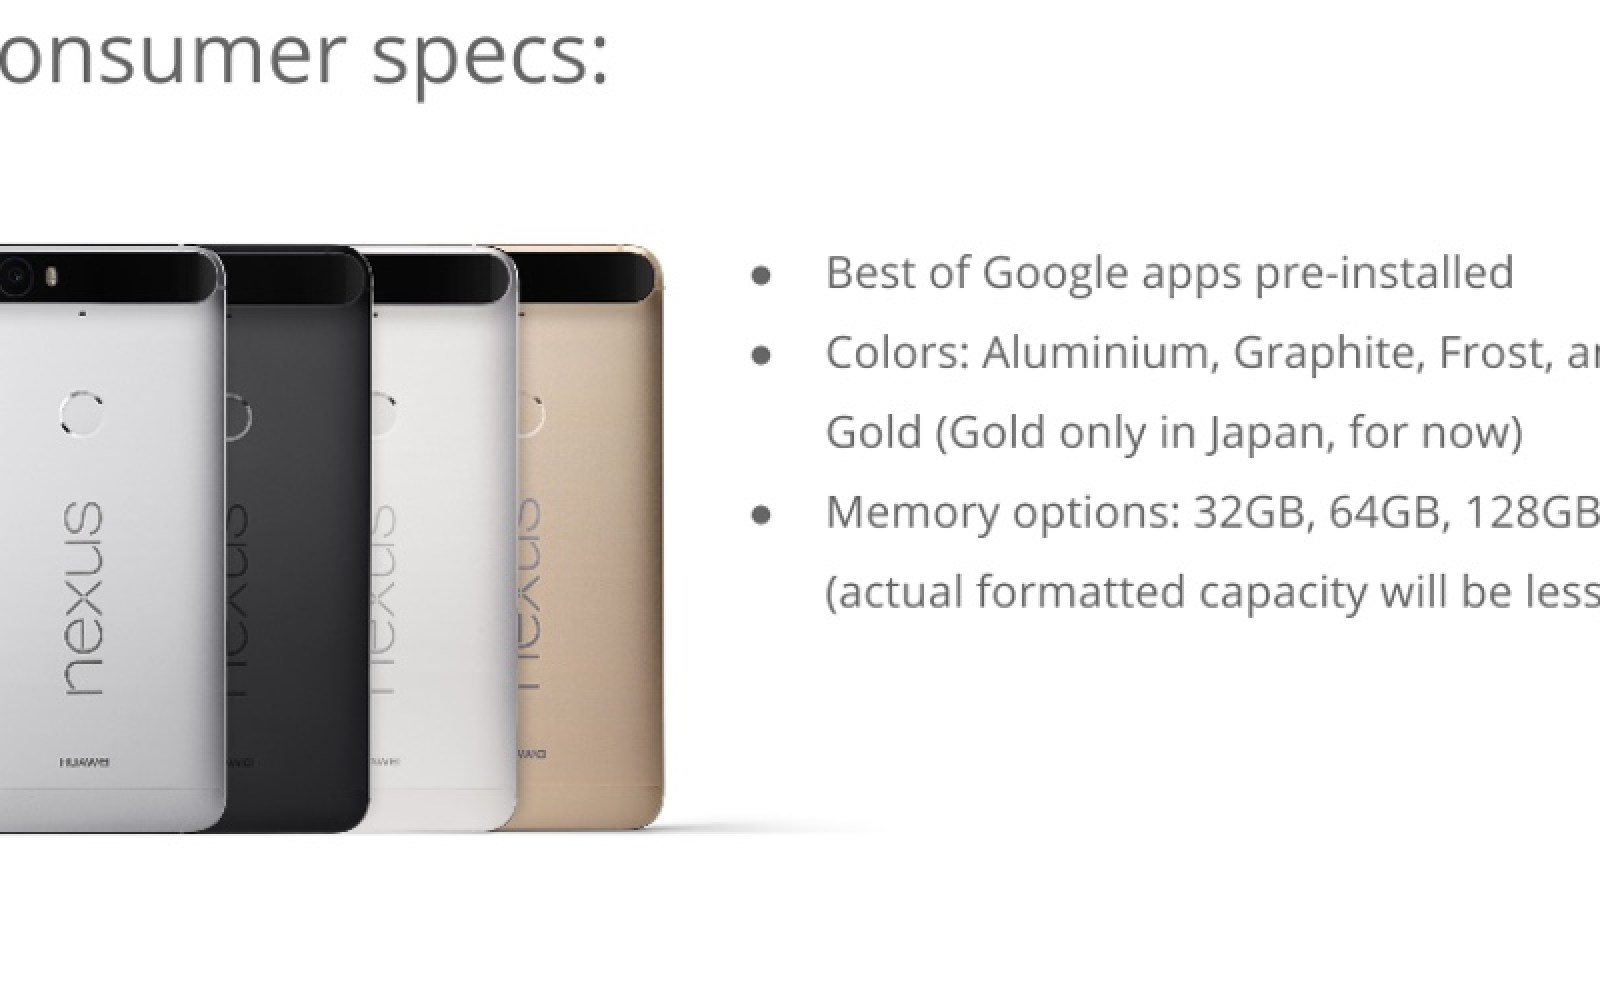 Leaked Huawei Nexus 6P reveals 4 color choices, 3450mAh battery, storage options, more